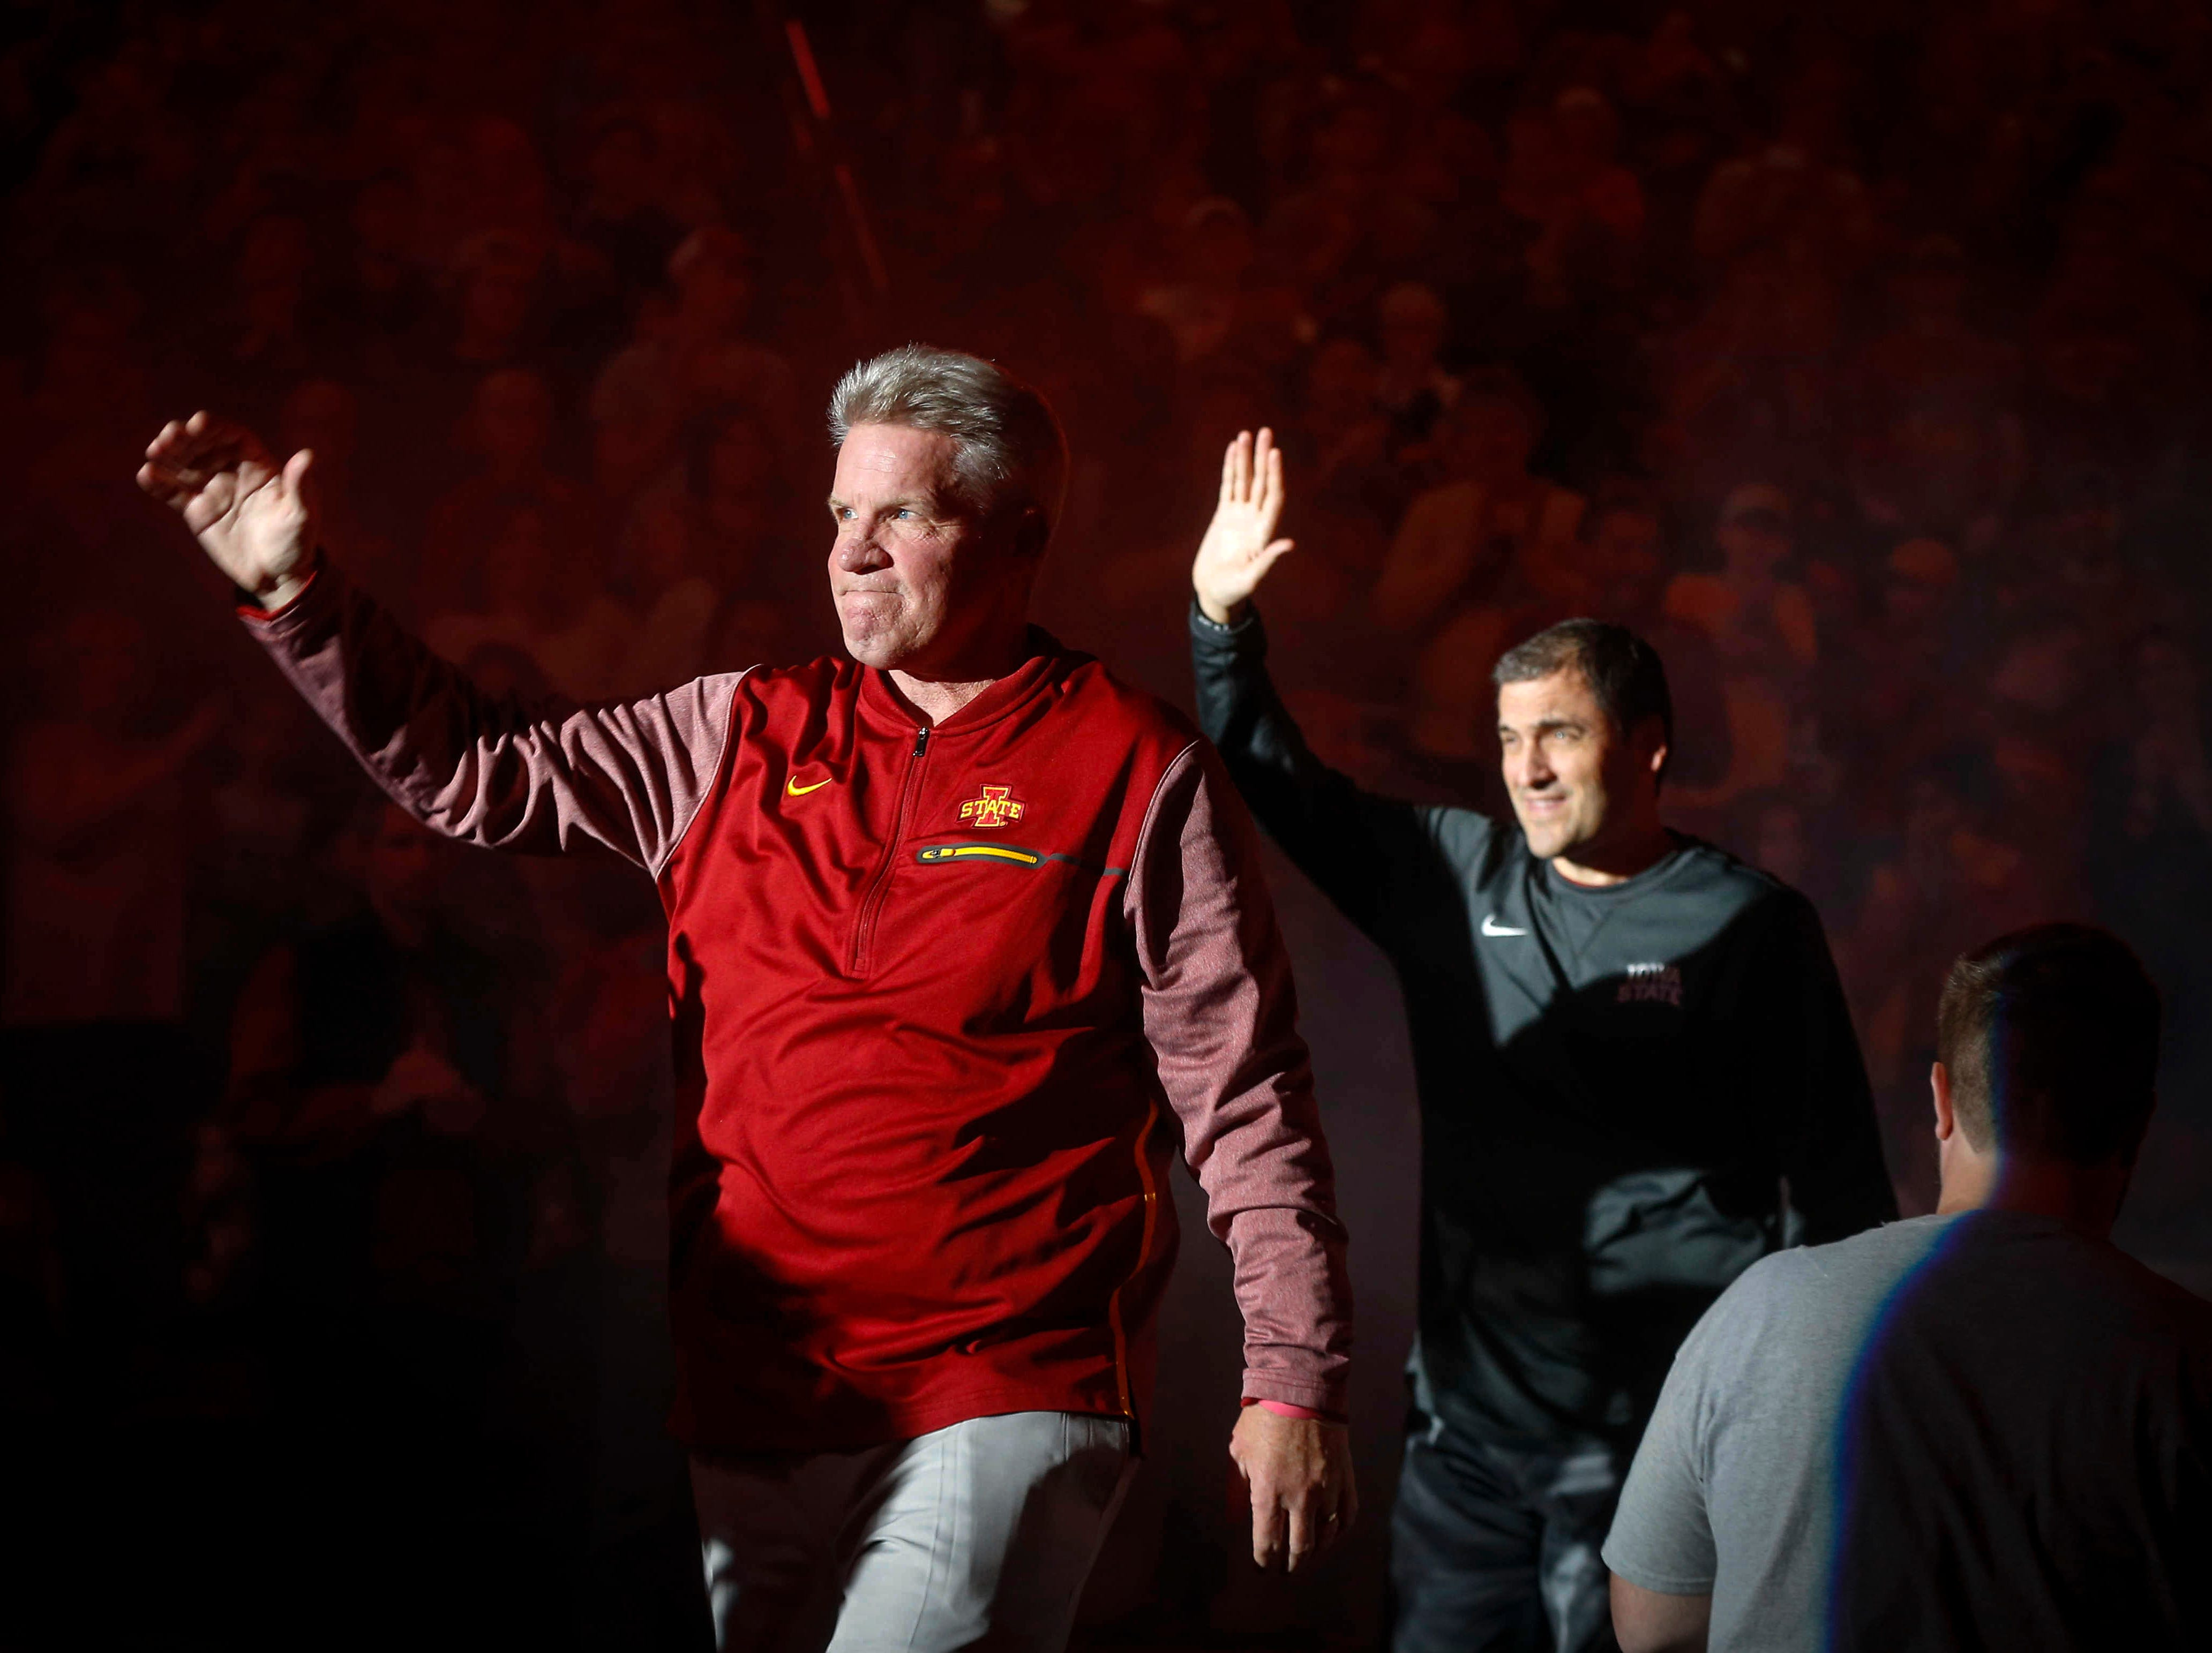 Iowa State women's head basketball coach Bill Fennelly waves to the crowd as he is introduced during Hilton Madness at Hilton Coliseum in Ames on Friday, Oct. 12, 2018.